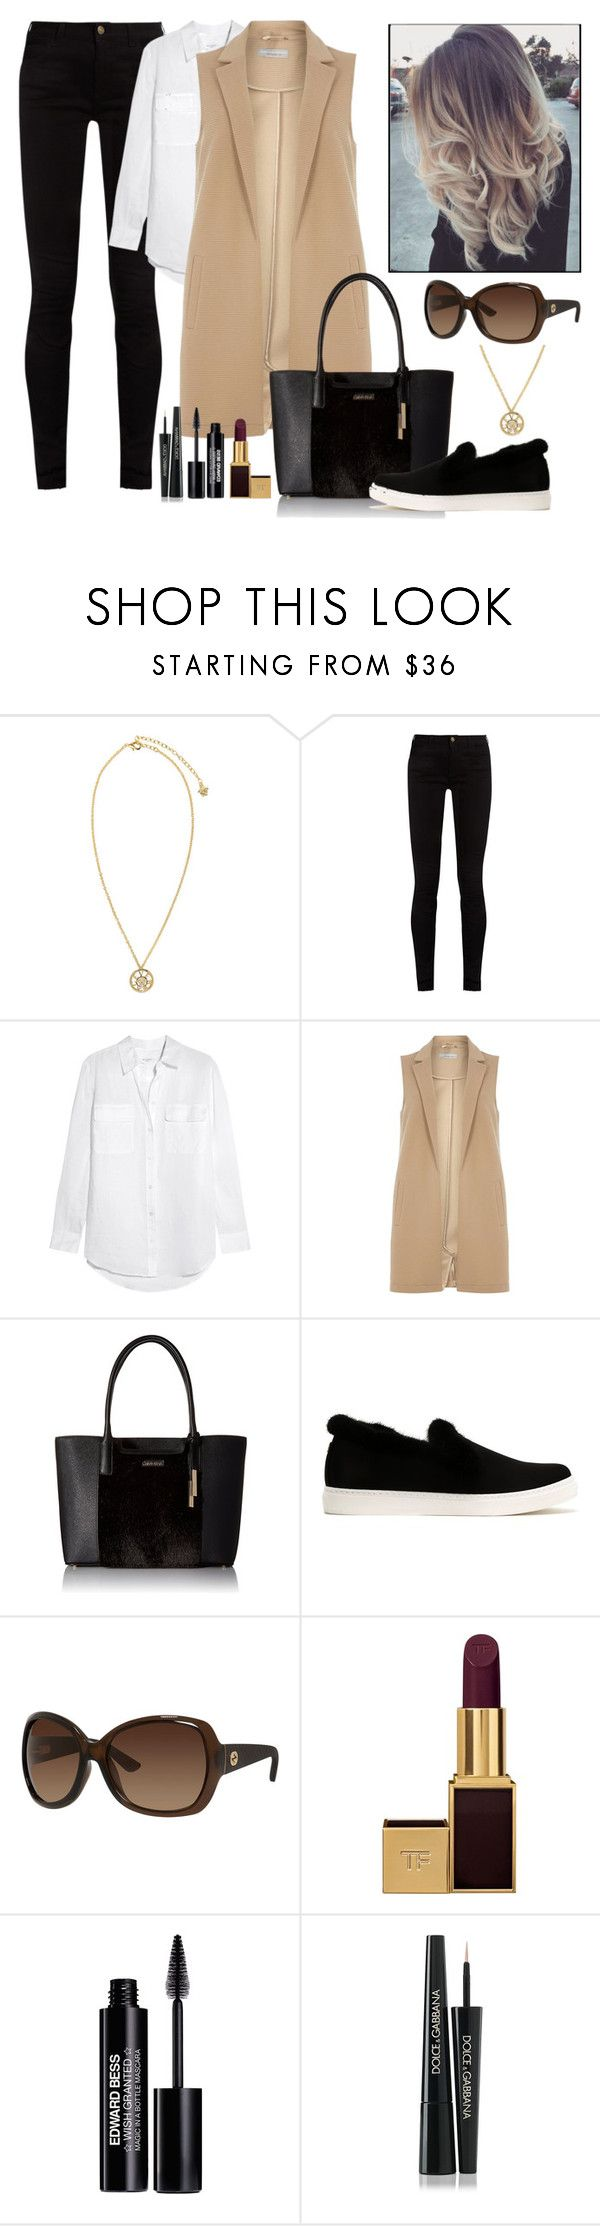 """inspired by spring casual"" by lady-on-million ❤ liked on Polyvore featuring Versace, Gucci, Equipment, mel, Calvin Klein, Sonia Rykiel, Tom Ford, Edward Bess and Dolce&Gabbana"